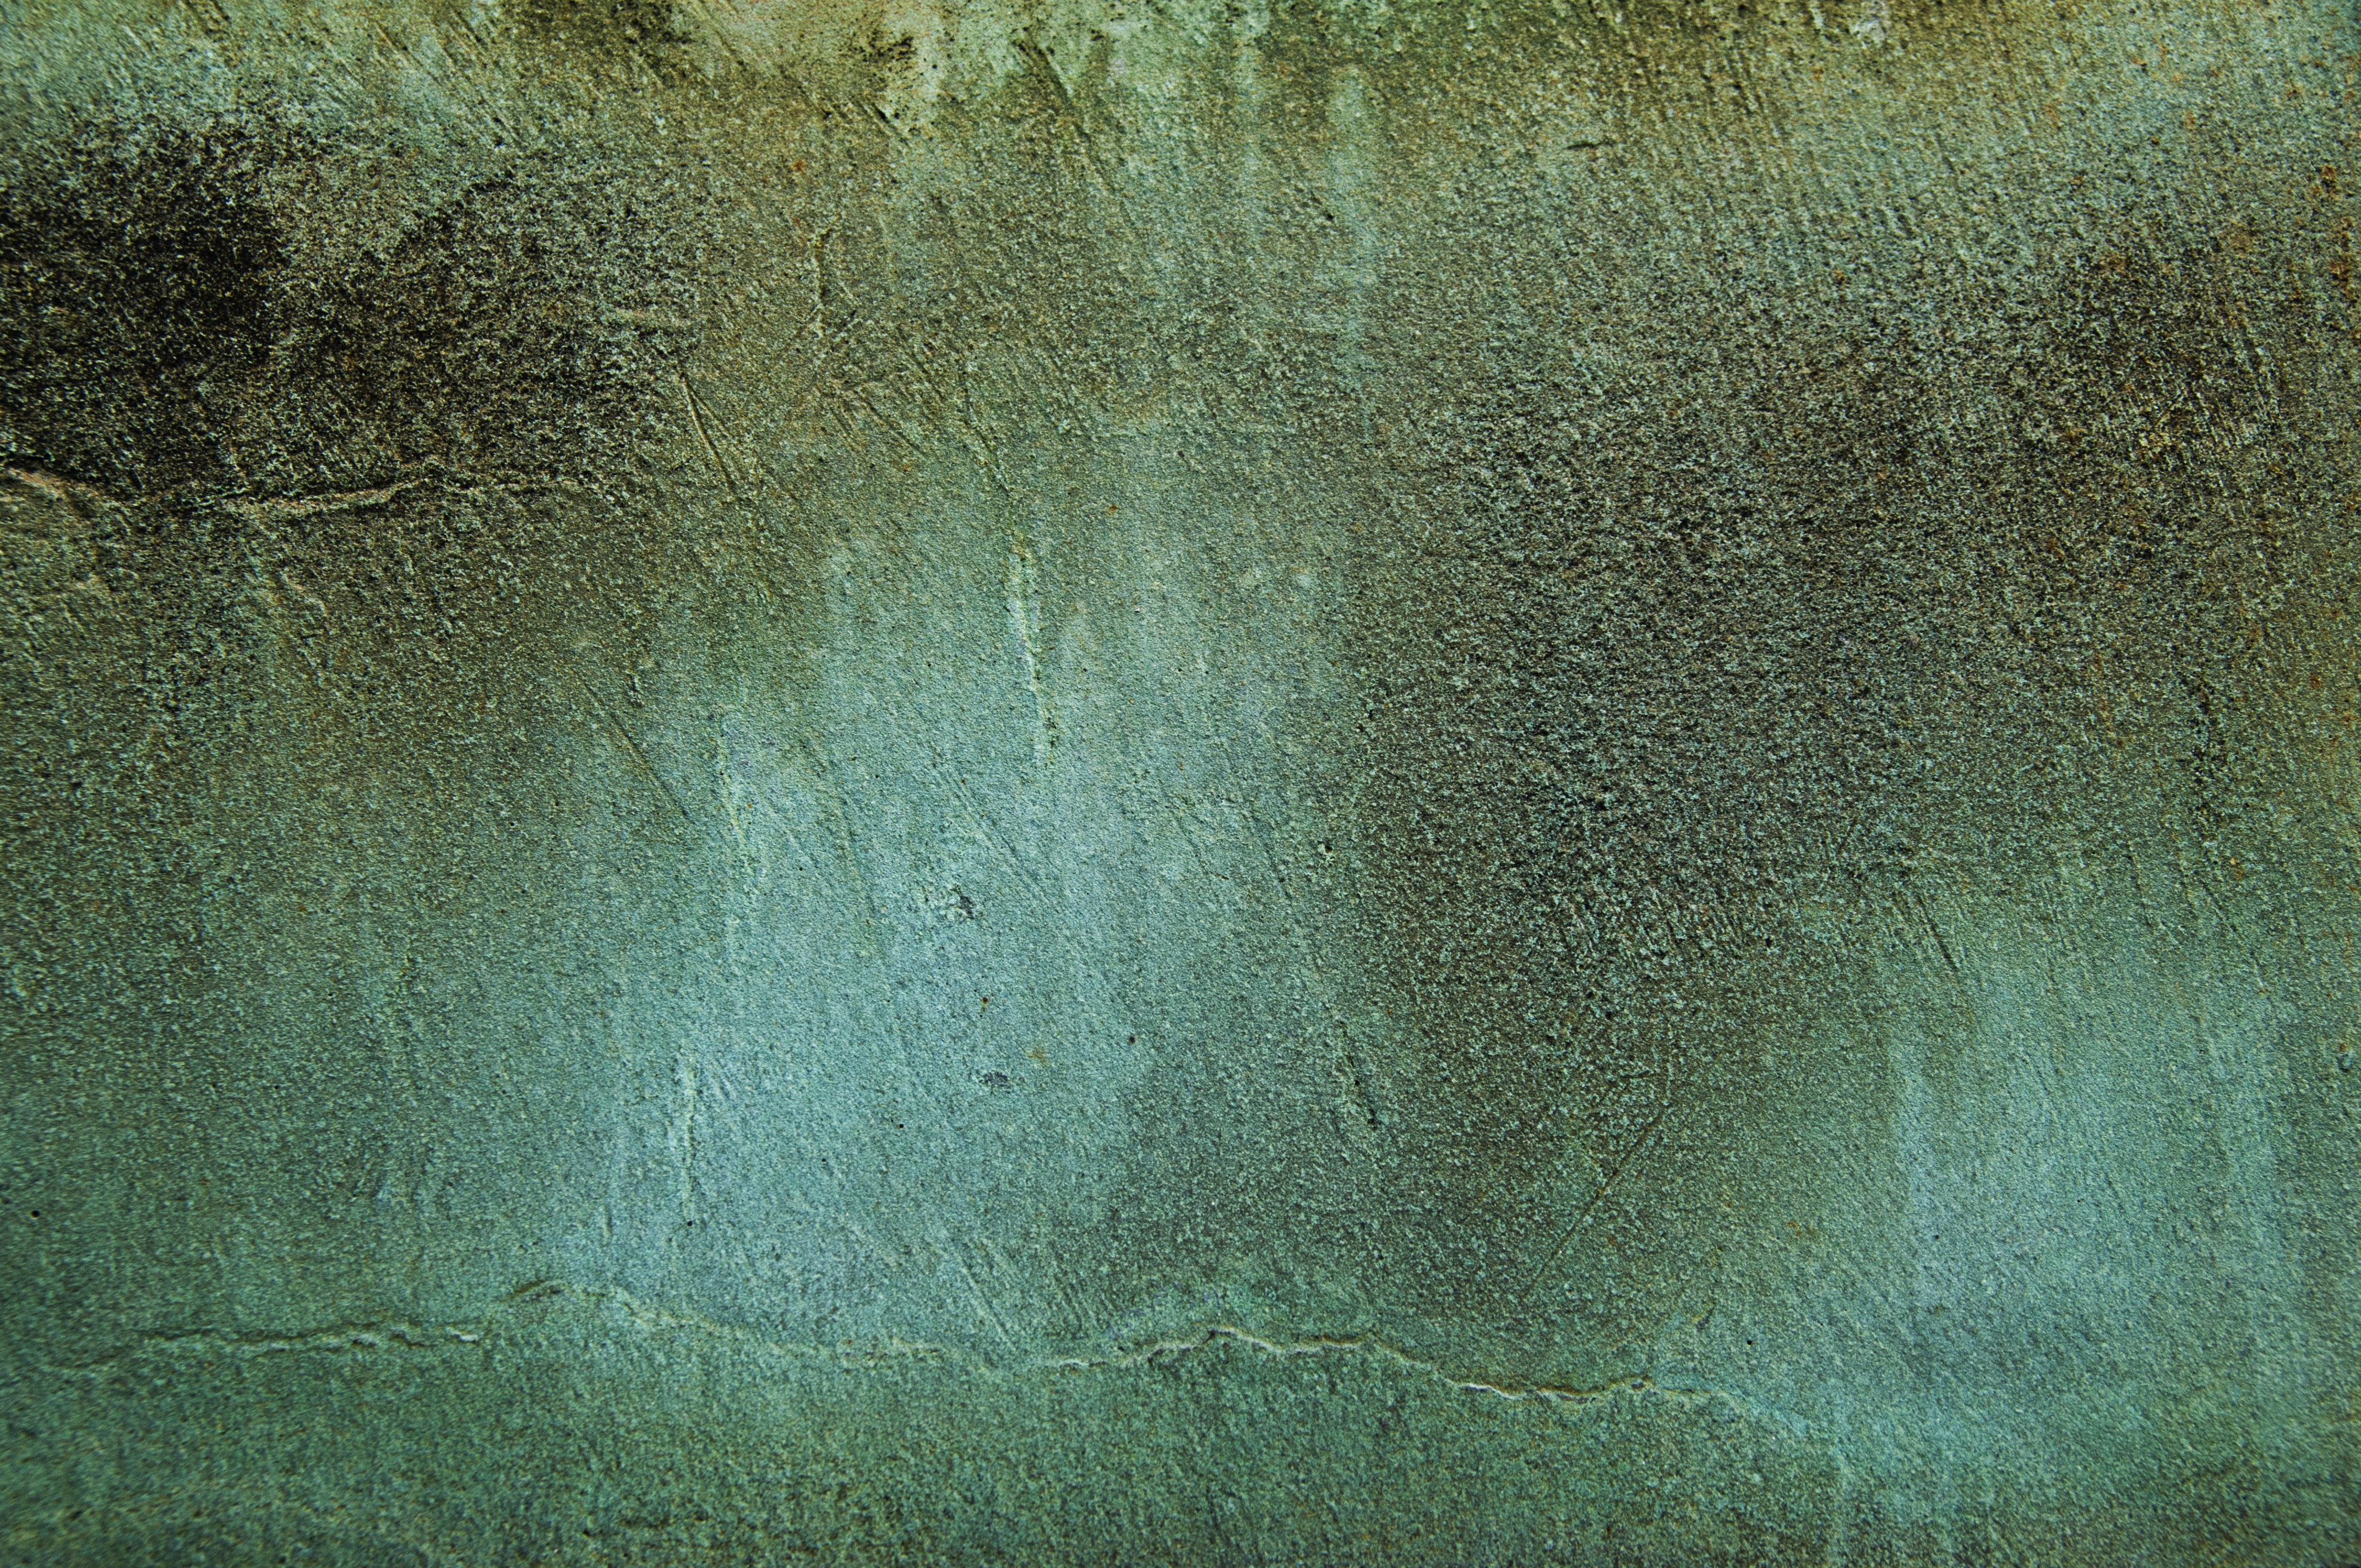 Untitled Texture 378